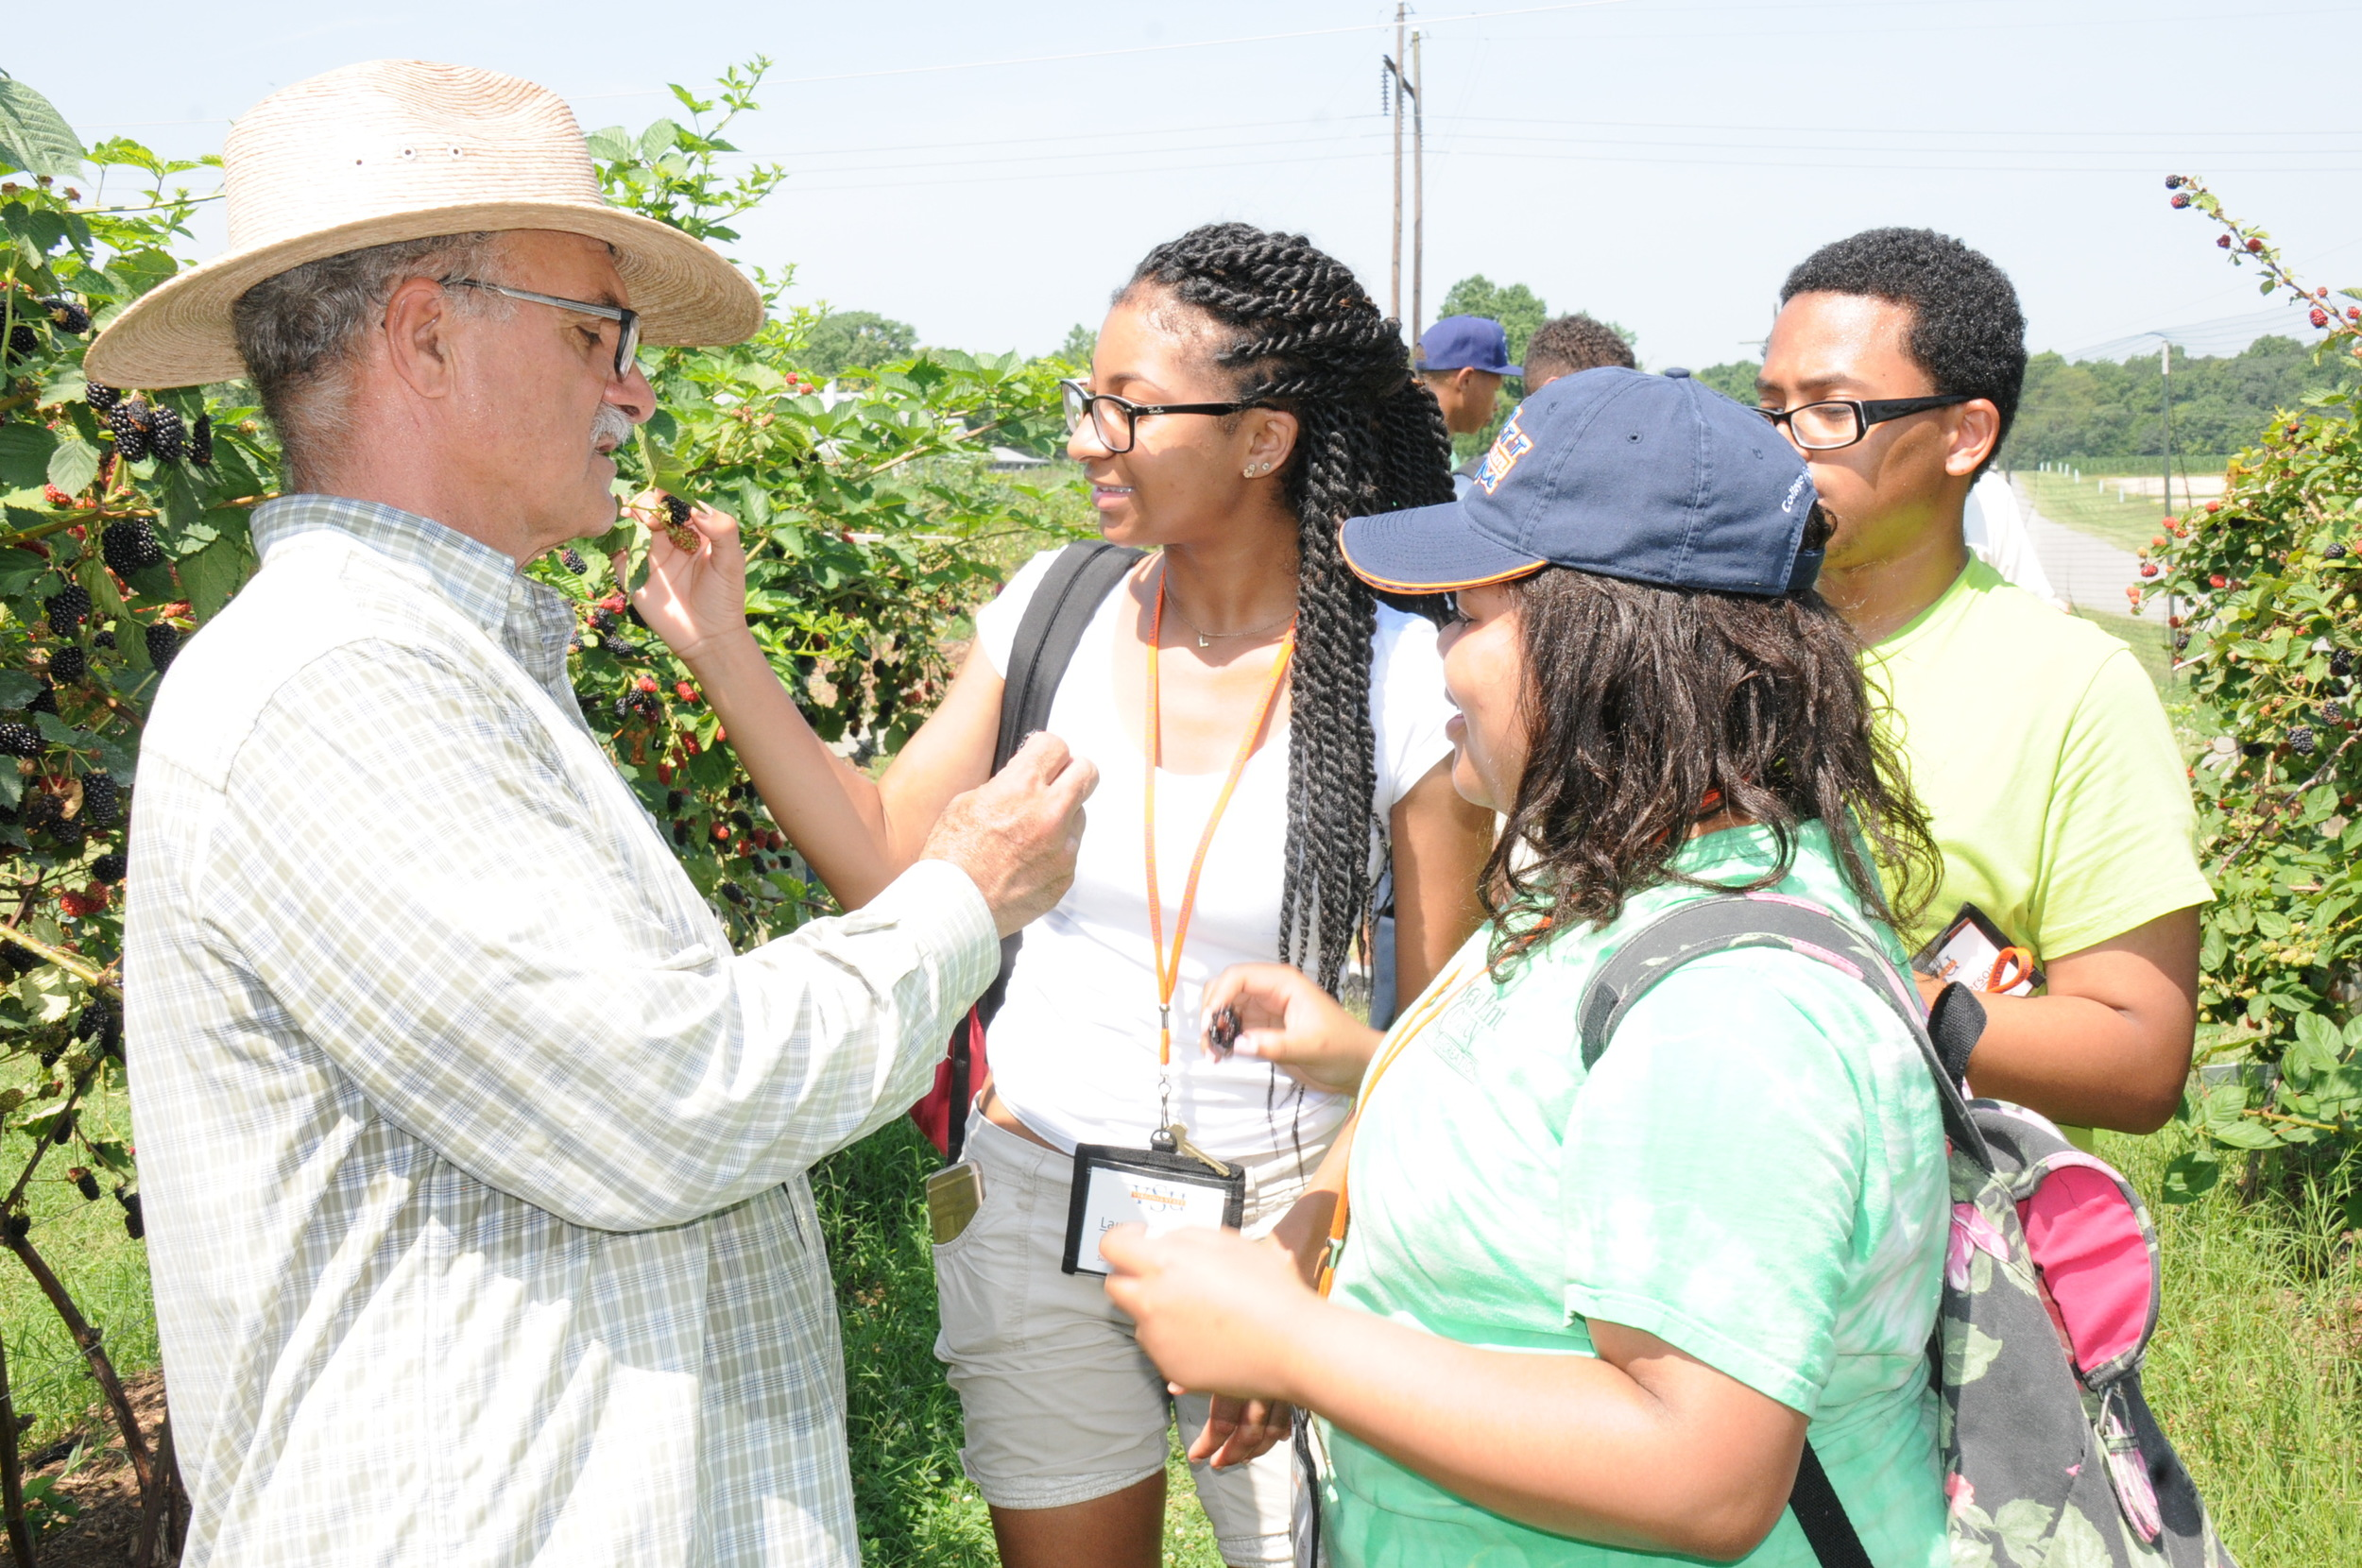 Extension Specialist Dr. Reza Rafie gives high school students insights on berry farming during the 2015 summer enrichment program.